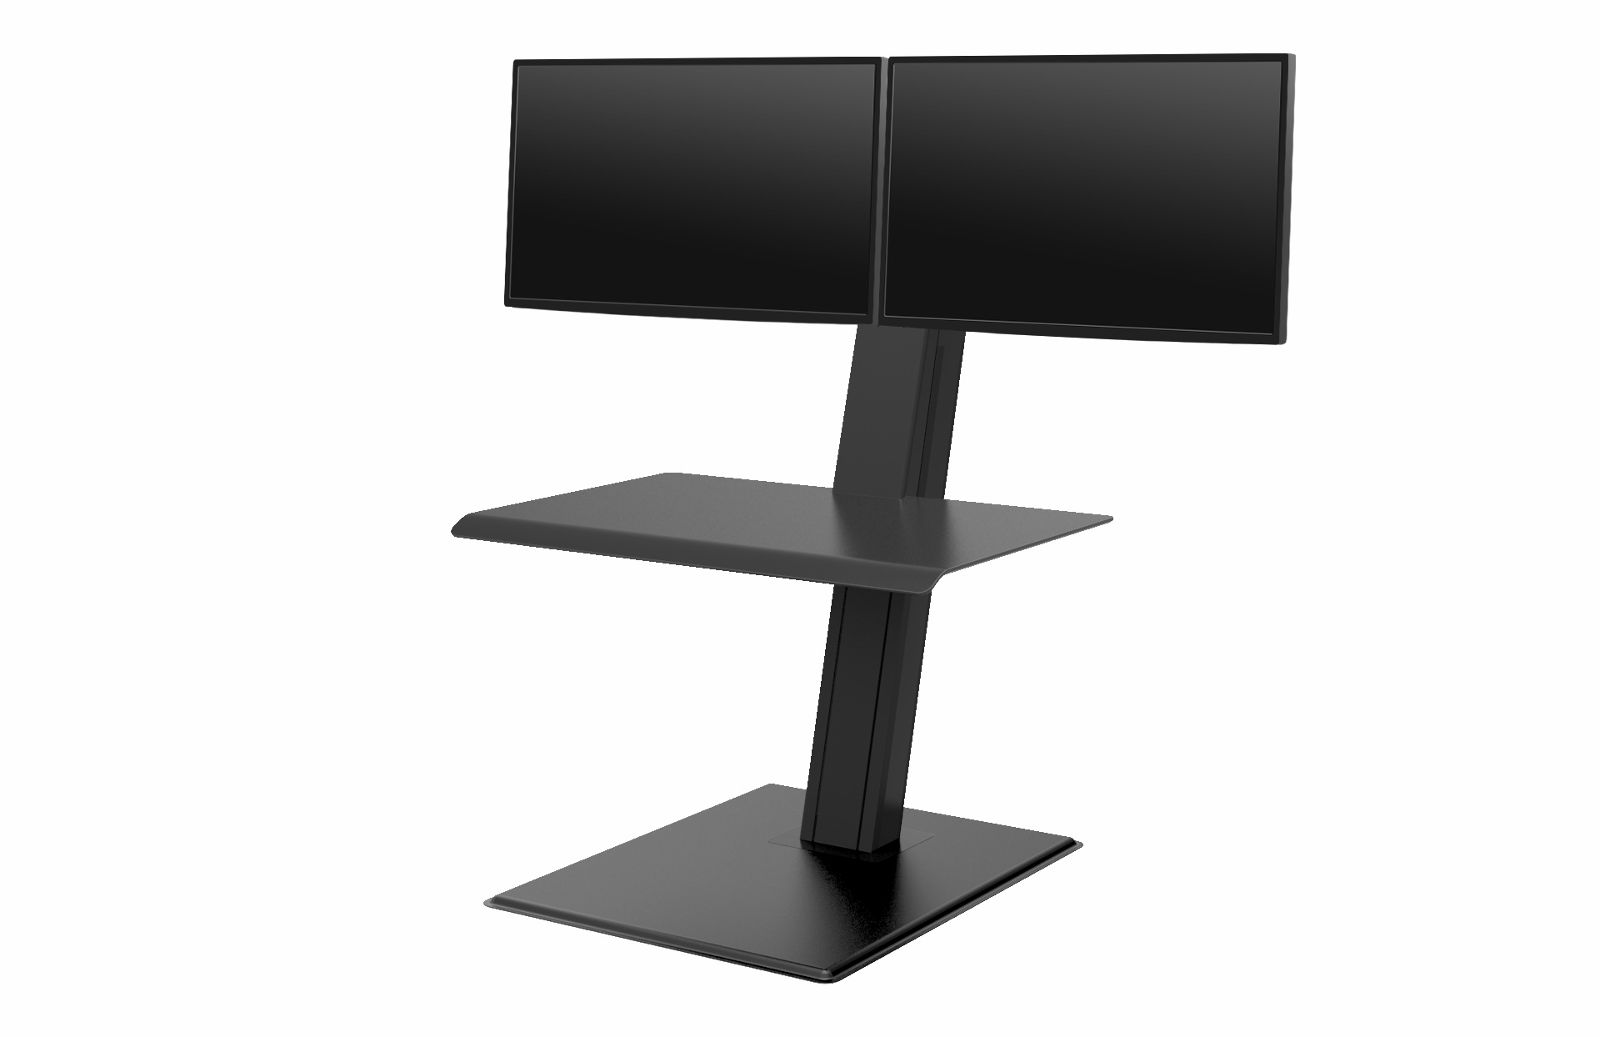 "Humanscale Quickstand ECO Sit/Stand Workstation for Dual Monitors (2 x 27"" monitors), Freestanding in Black"